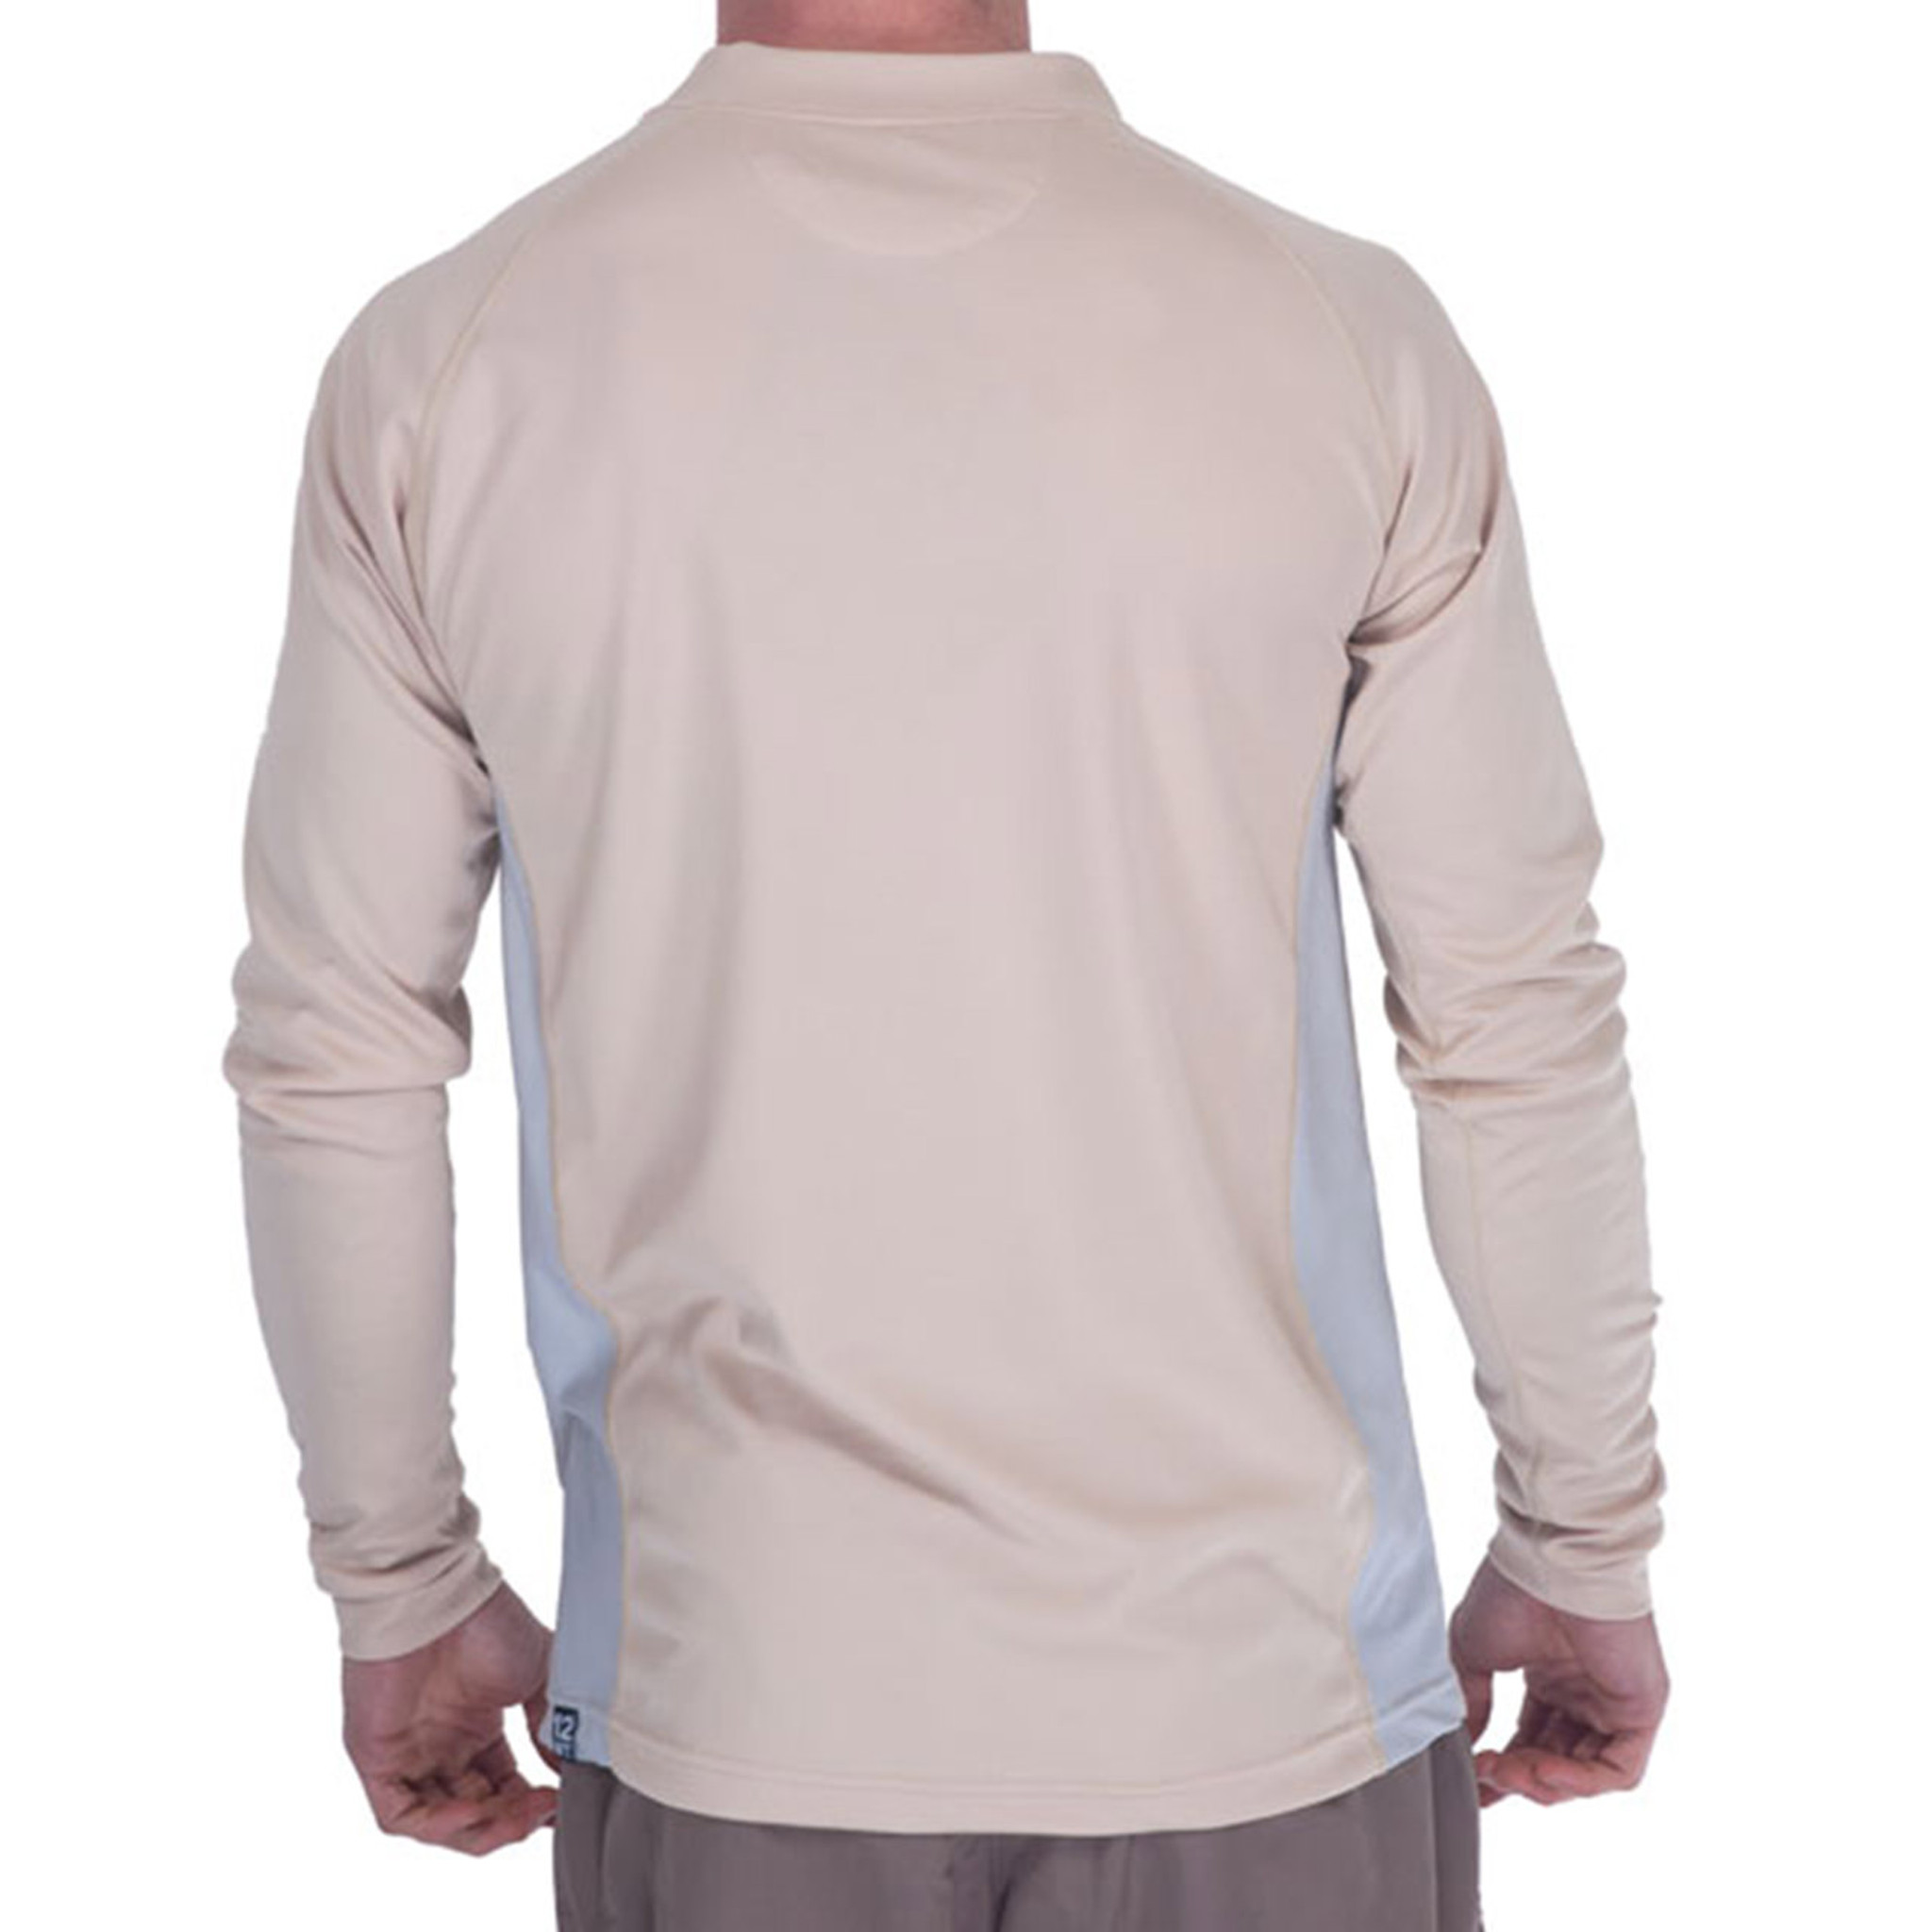 Freewt Long Sleeve Shirt With Uv Protection